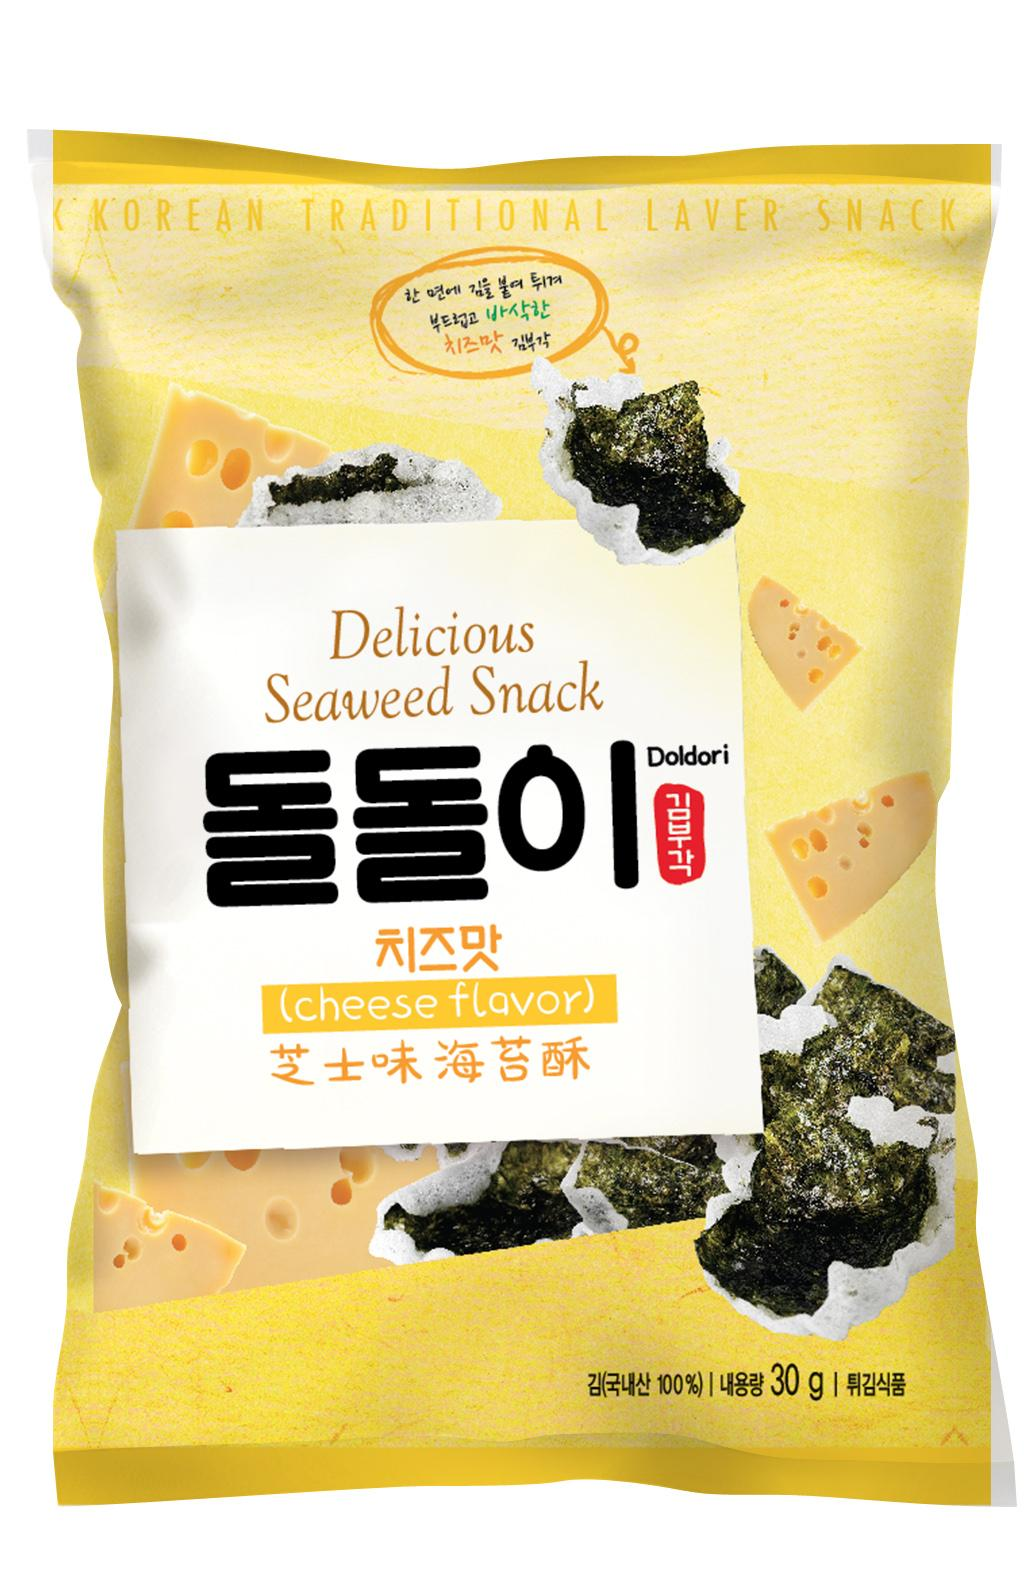 Snack rong biển vị phomai – Seaweed Snack Cheese Flavor